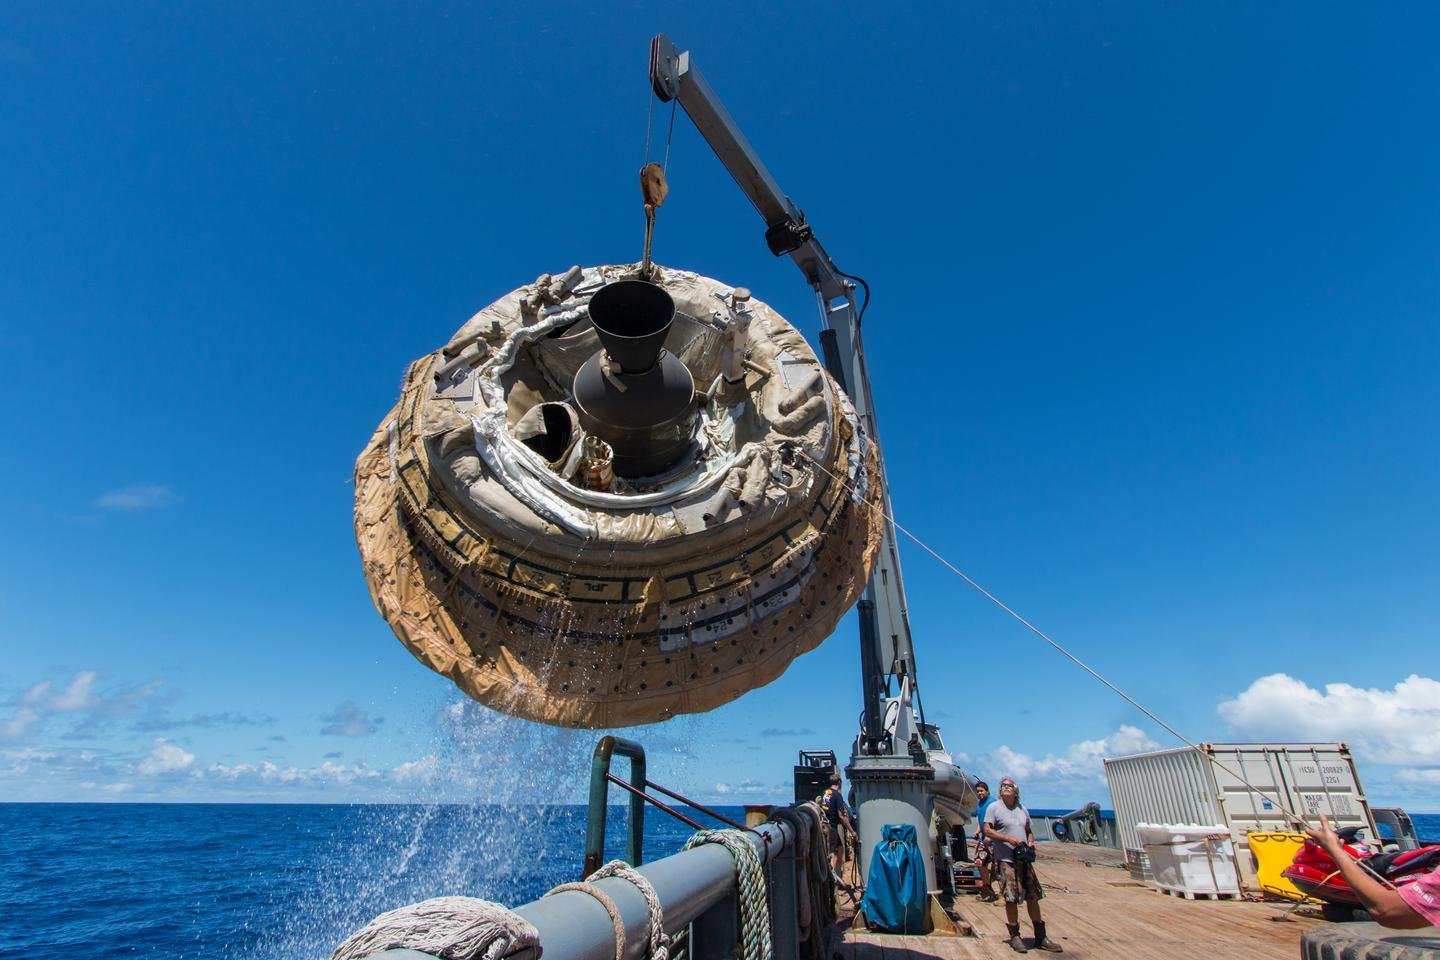 The LDSD test vehicle being fished from the Pacific Ocean by the Kahana recovery vessel (Photo: NASA/JPL-Caltech)